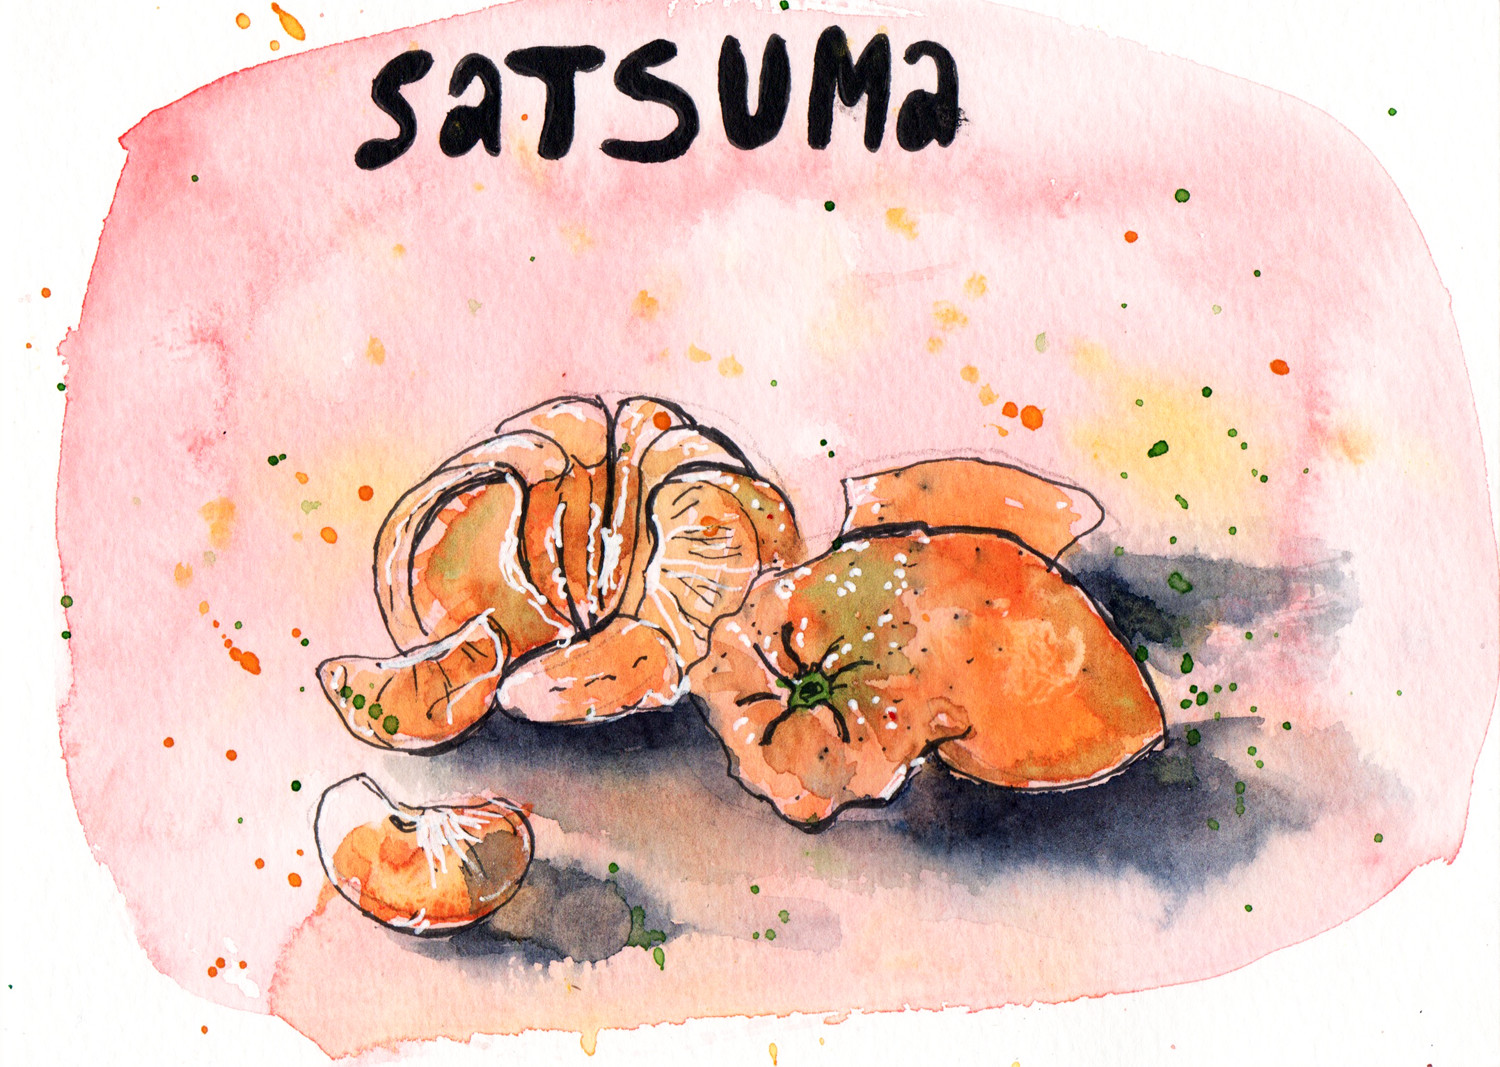 Satsuma Watercolour demonstration on painted background